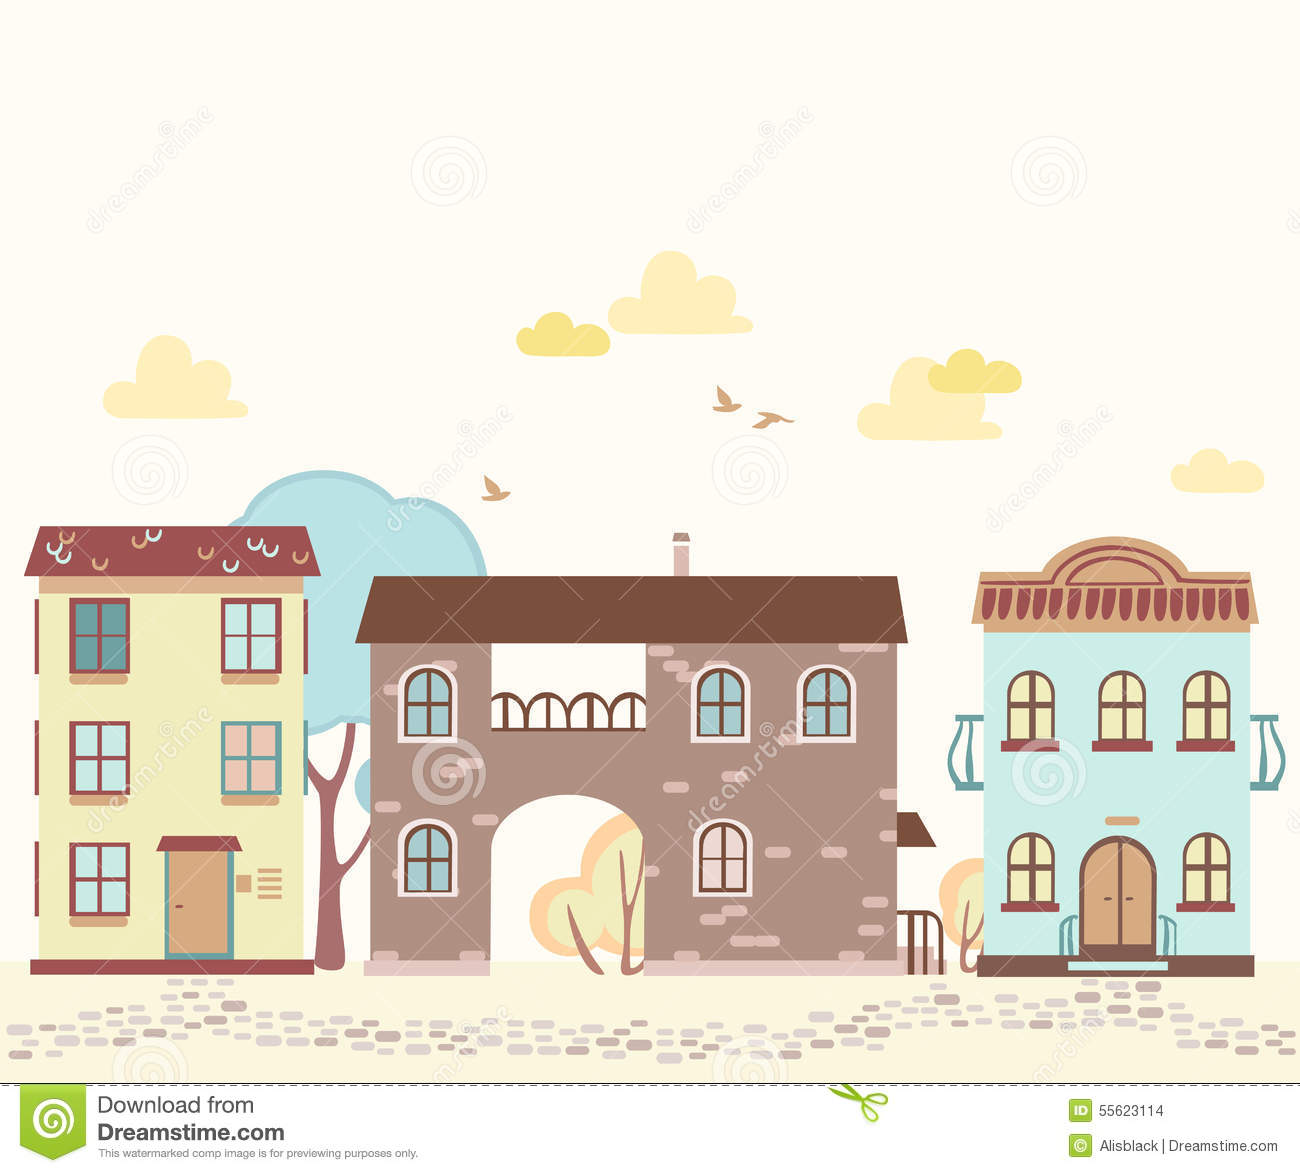 Cartoon Street With Houses, Clouds, Trees Stock Vector.